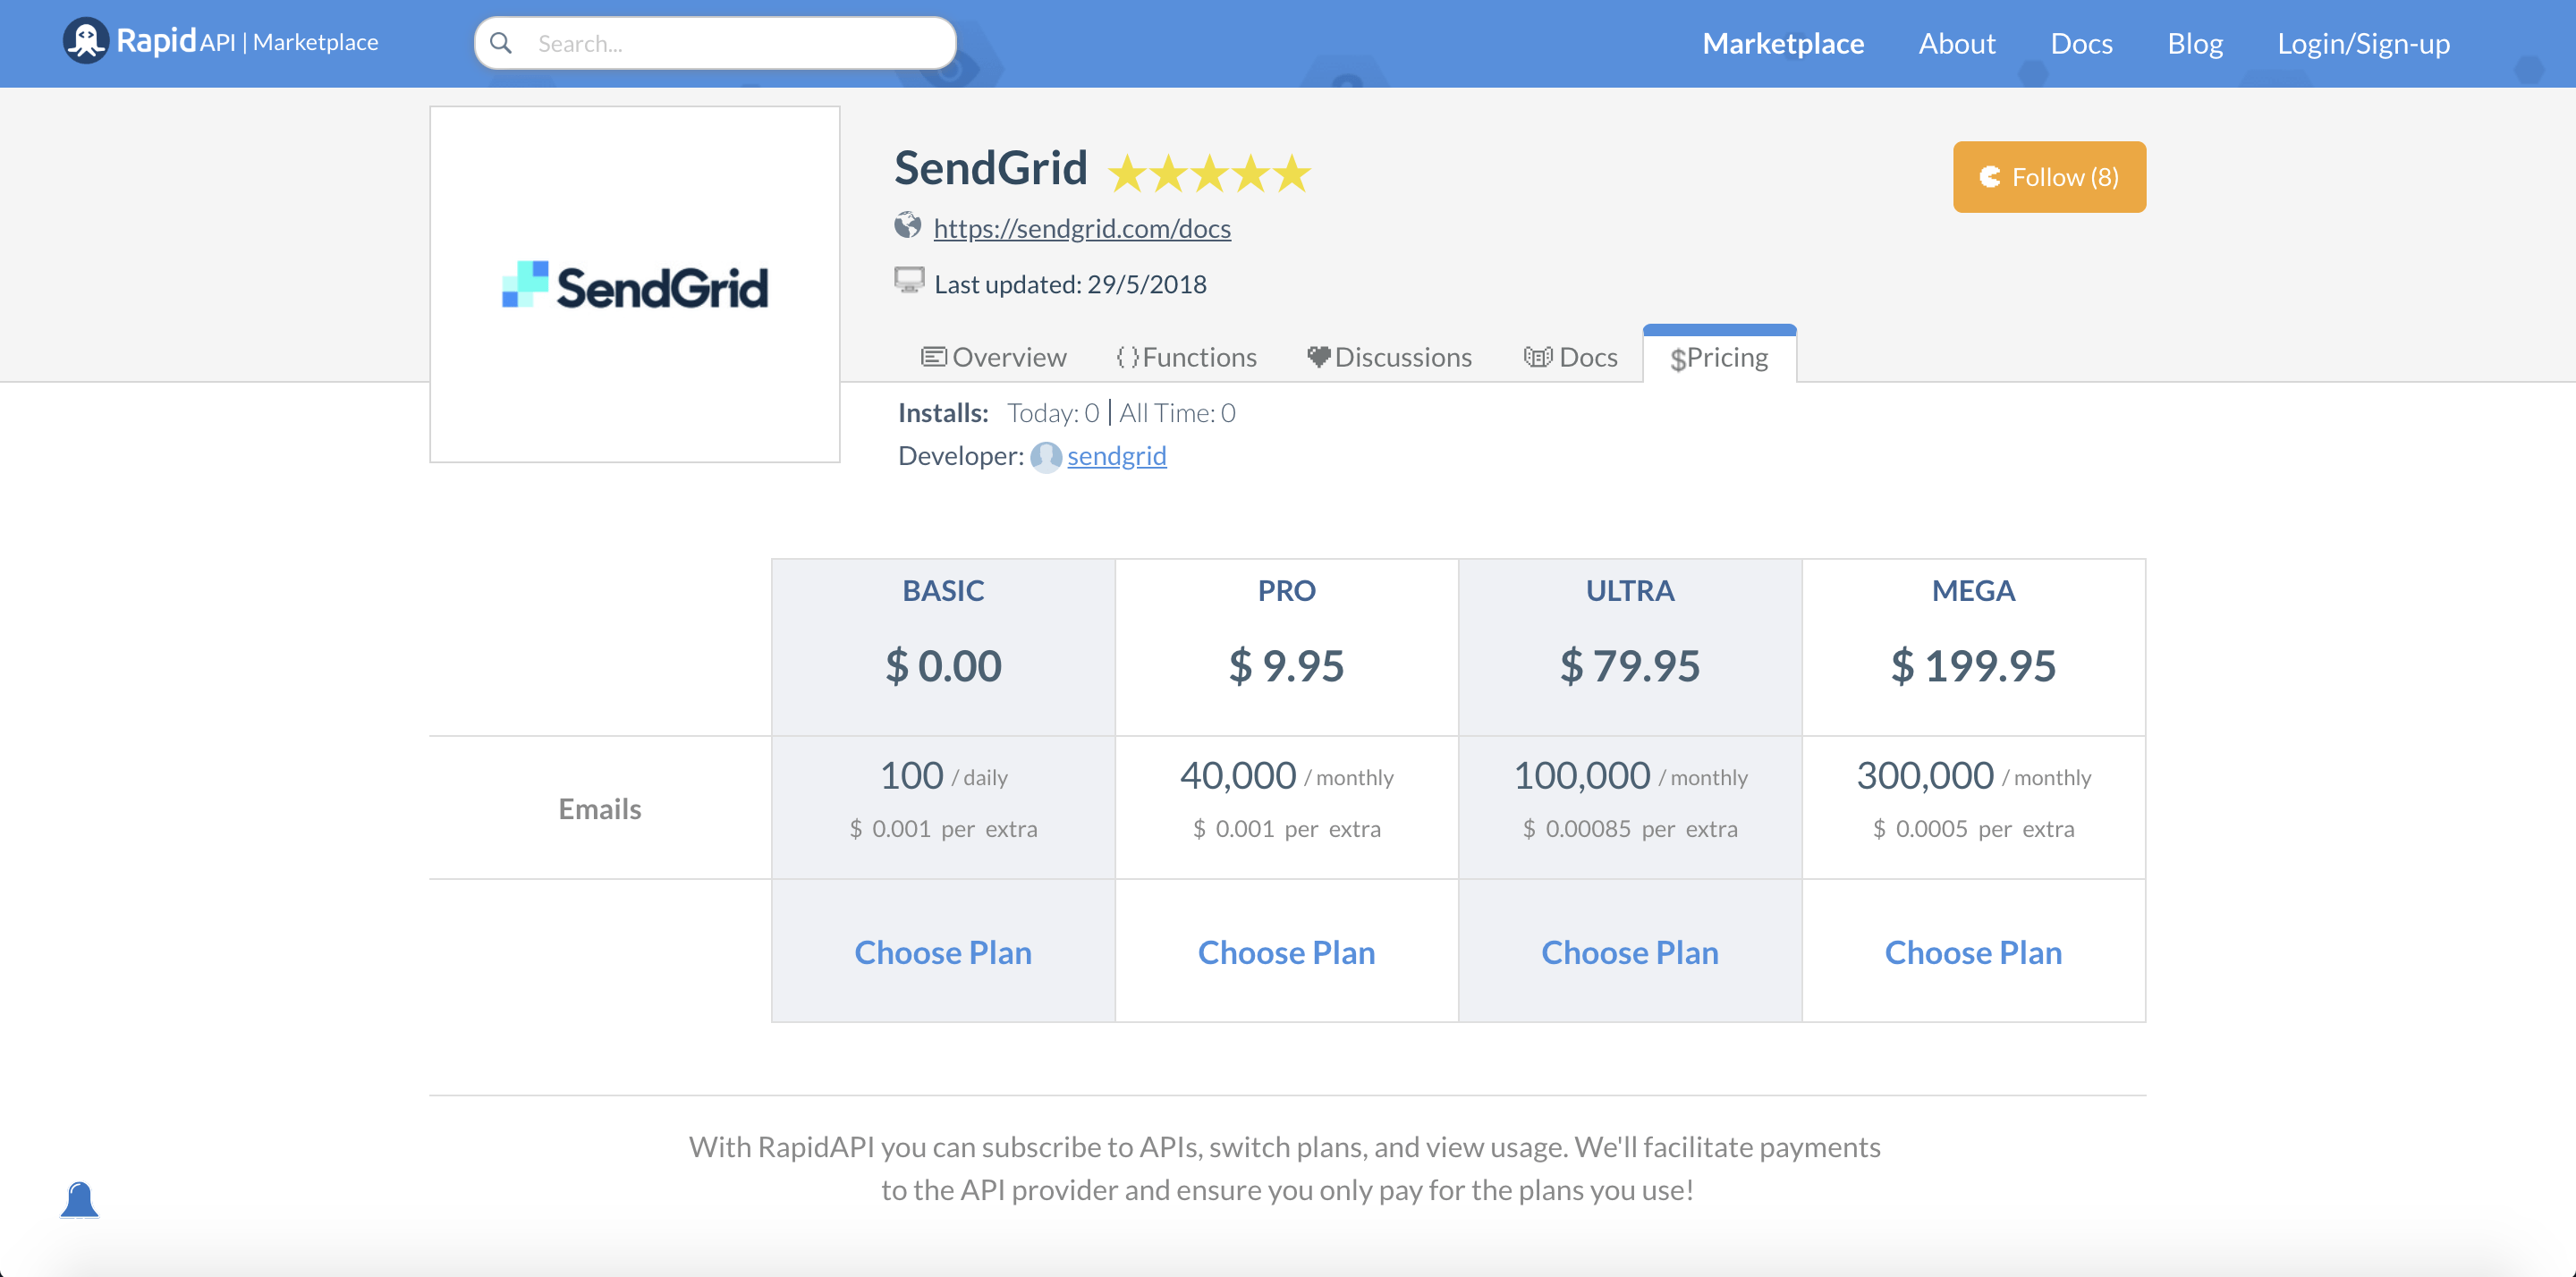 SendGrid pricing page on RapidAPI